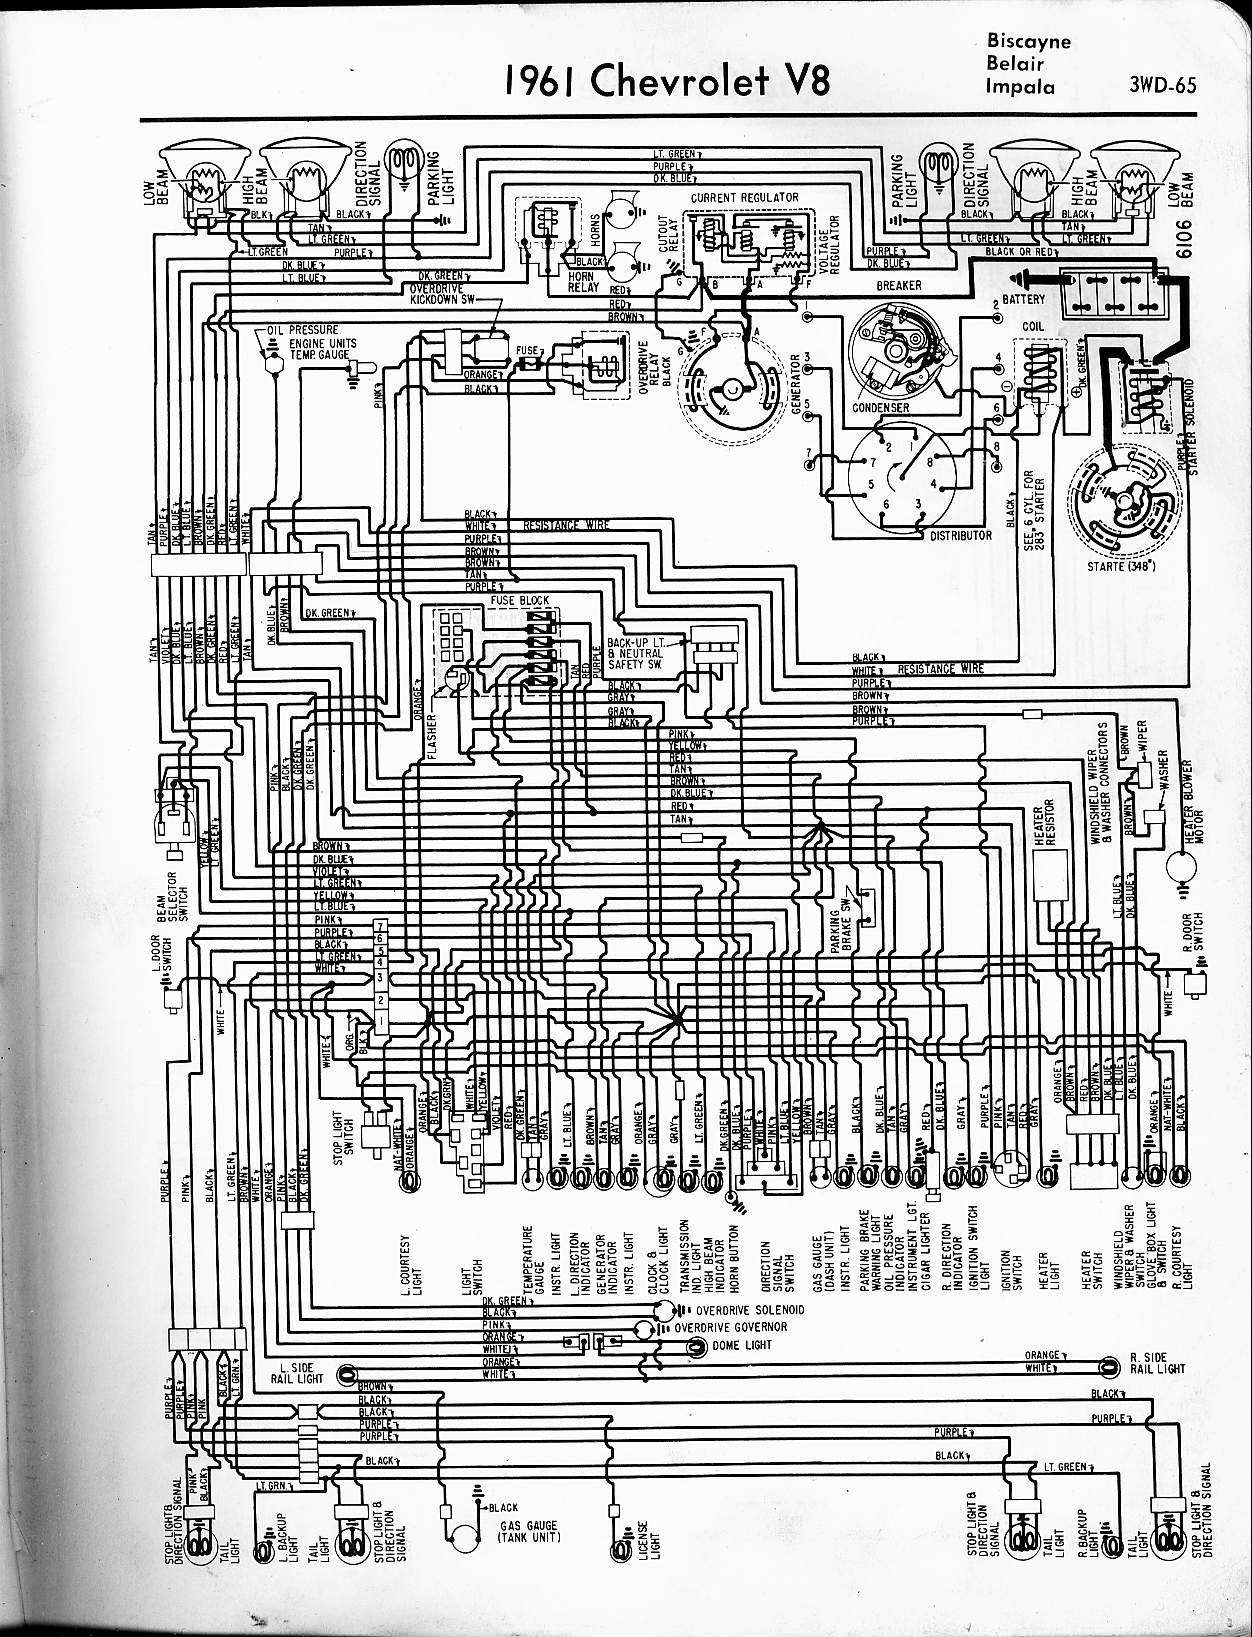 1965 chevy impala ss wiring diagram wiring diagram and Chevy Wiring Harness Diagram  1963 Chevy Impala